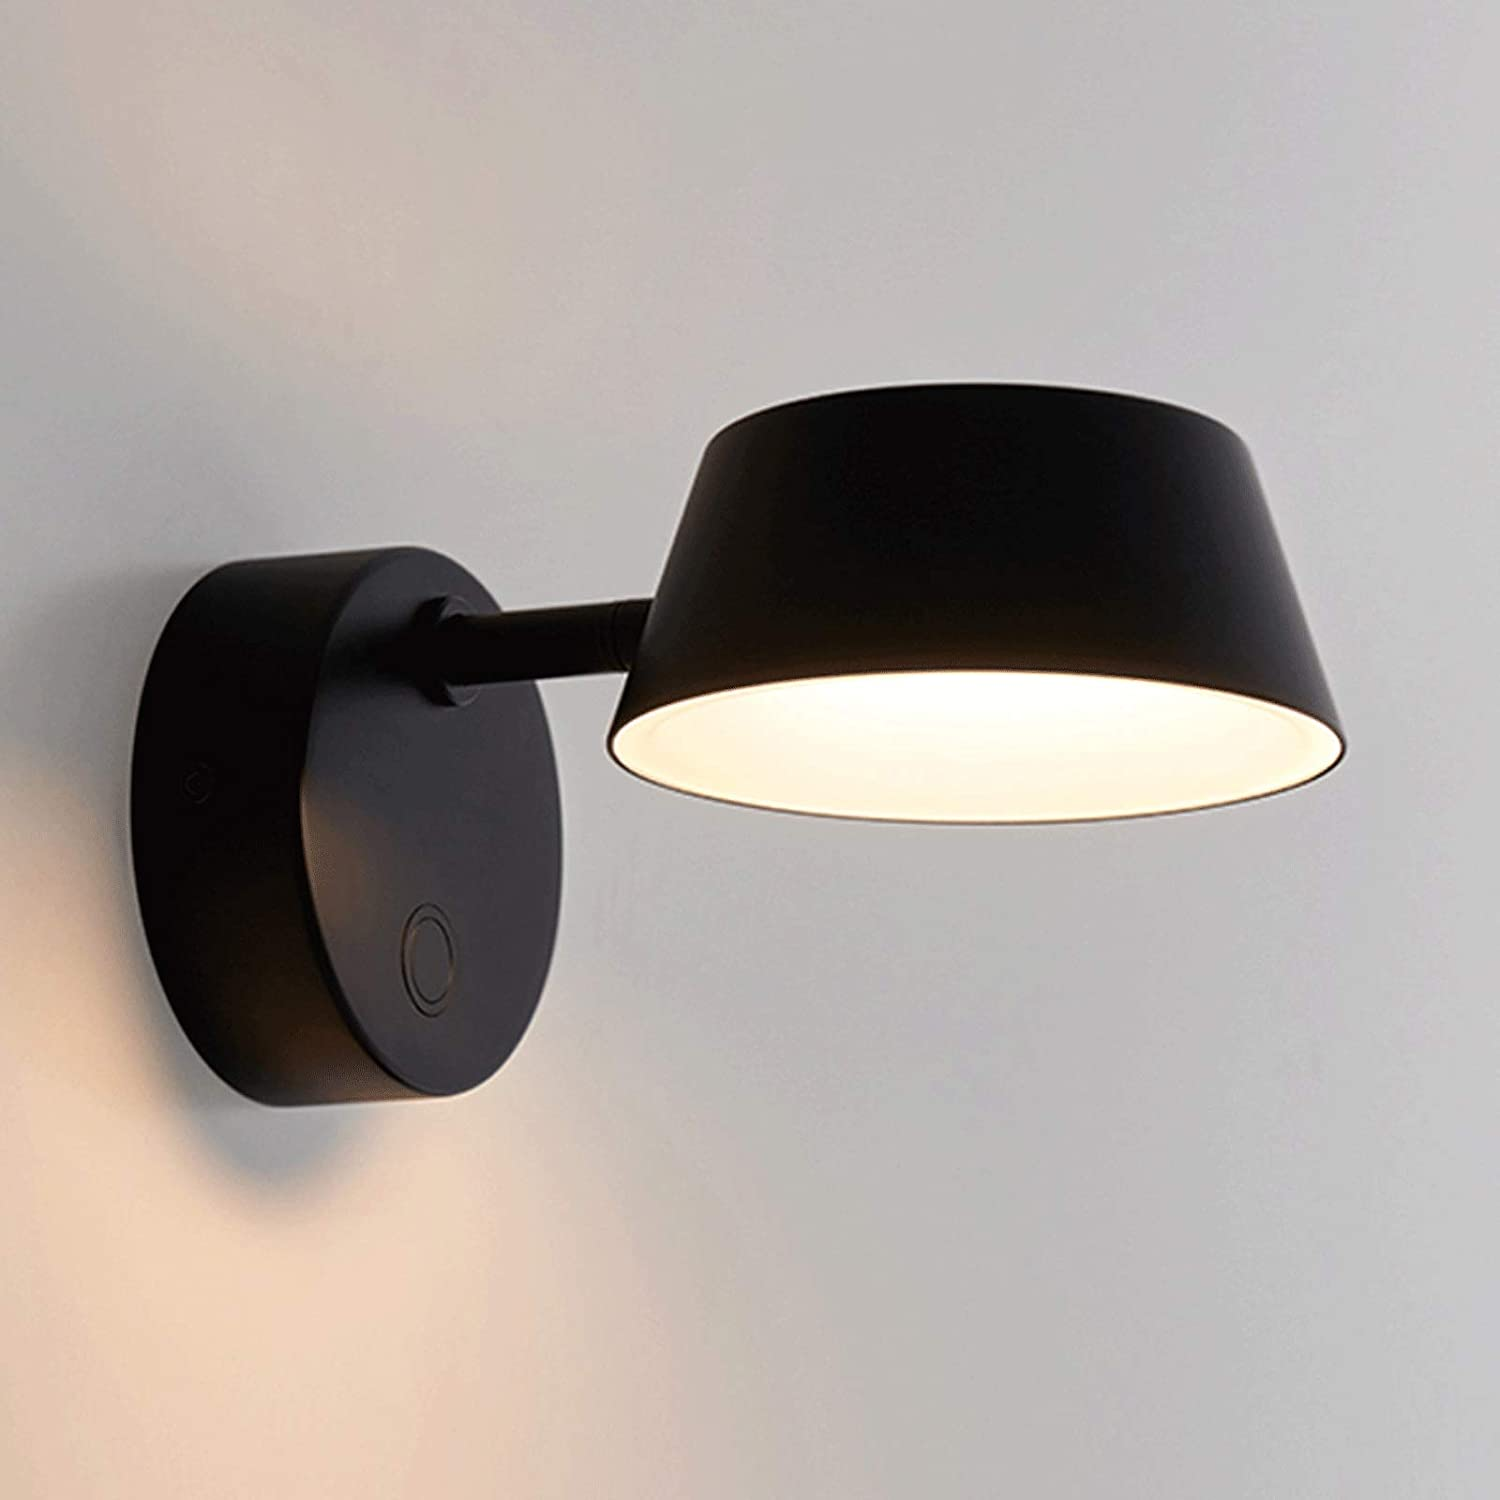 SHIJIE1701AA Oakland Mall Wall Sconce Lighting Plug Sconces in Rotating Oakland Mall